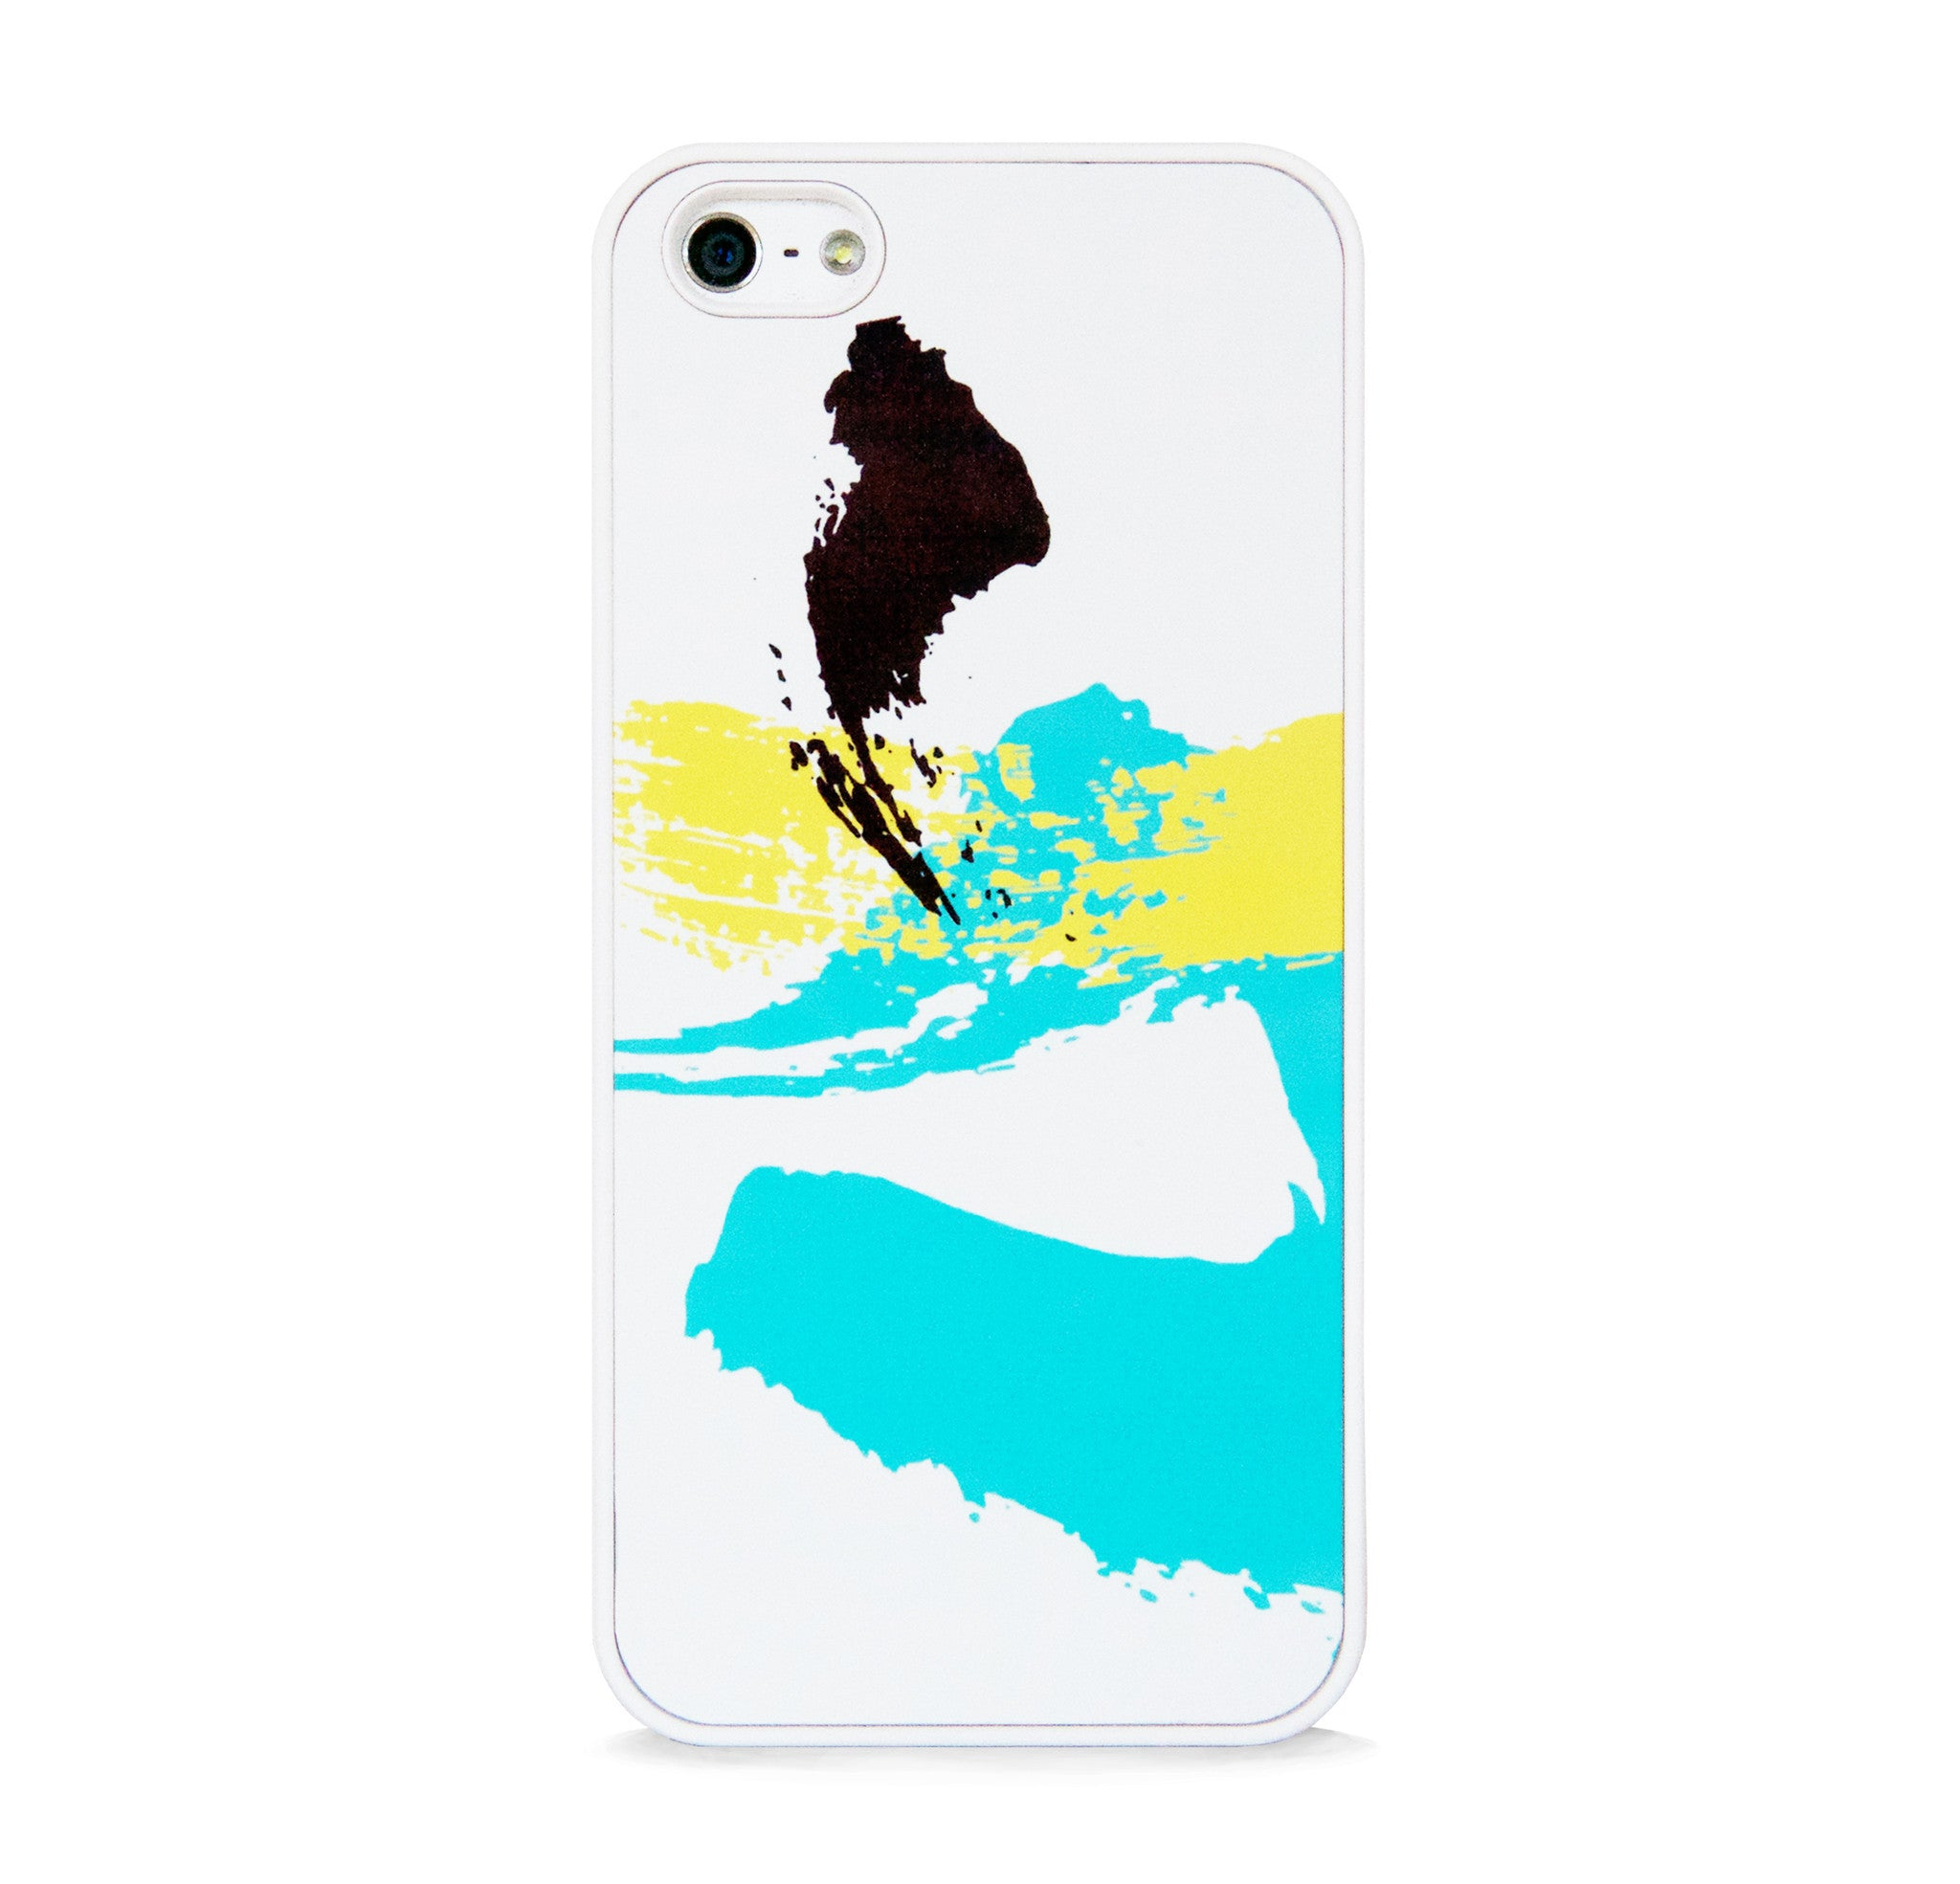 STYLISH CALLIGRAPHY MULTI MINT FOR IPHONE 5/5S, IPHONE SE